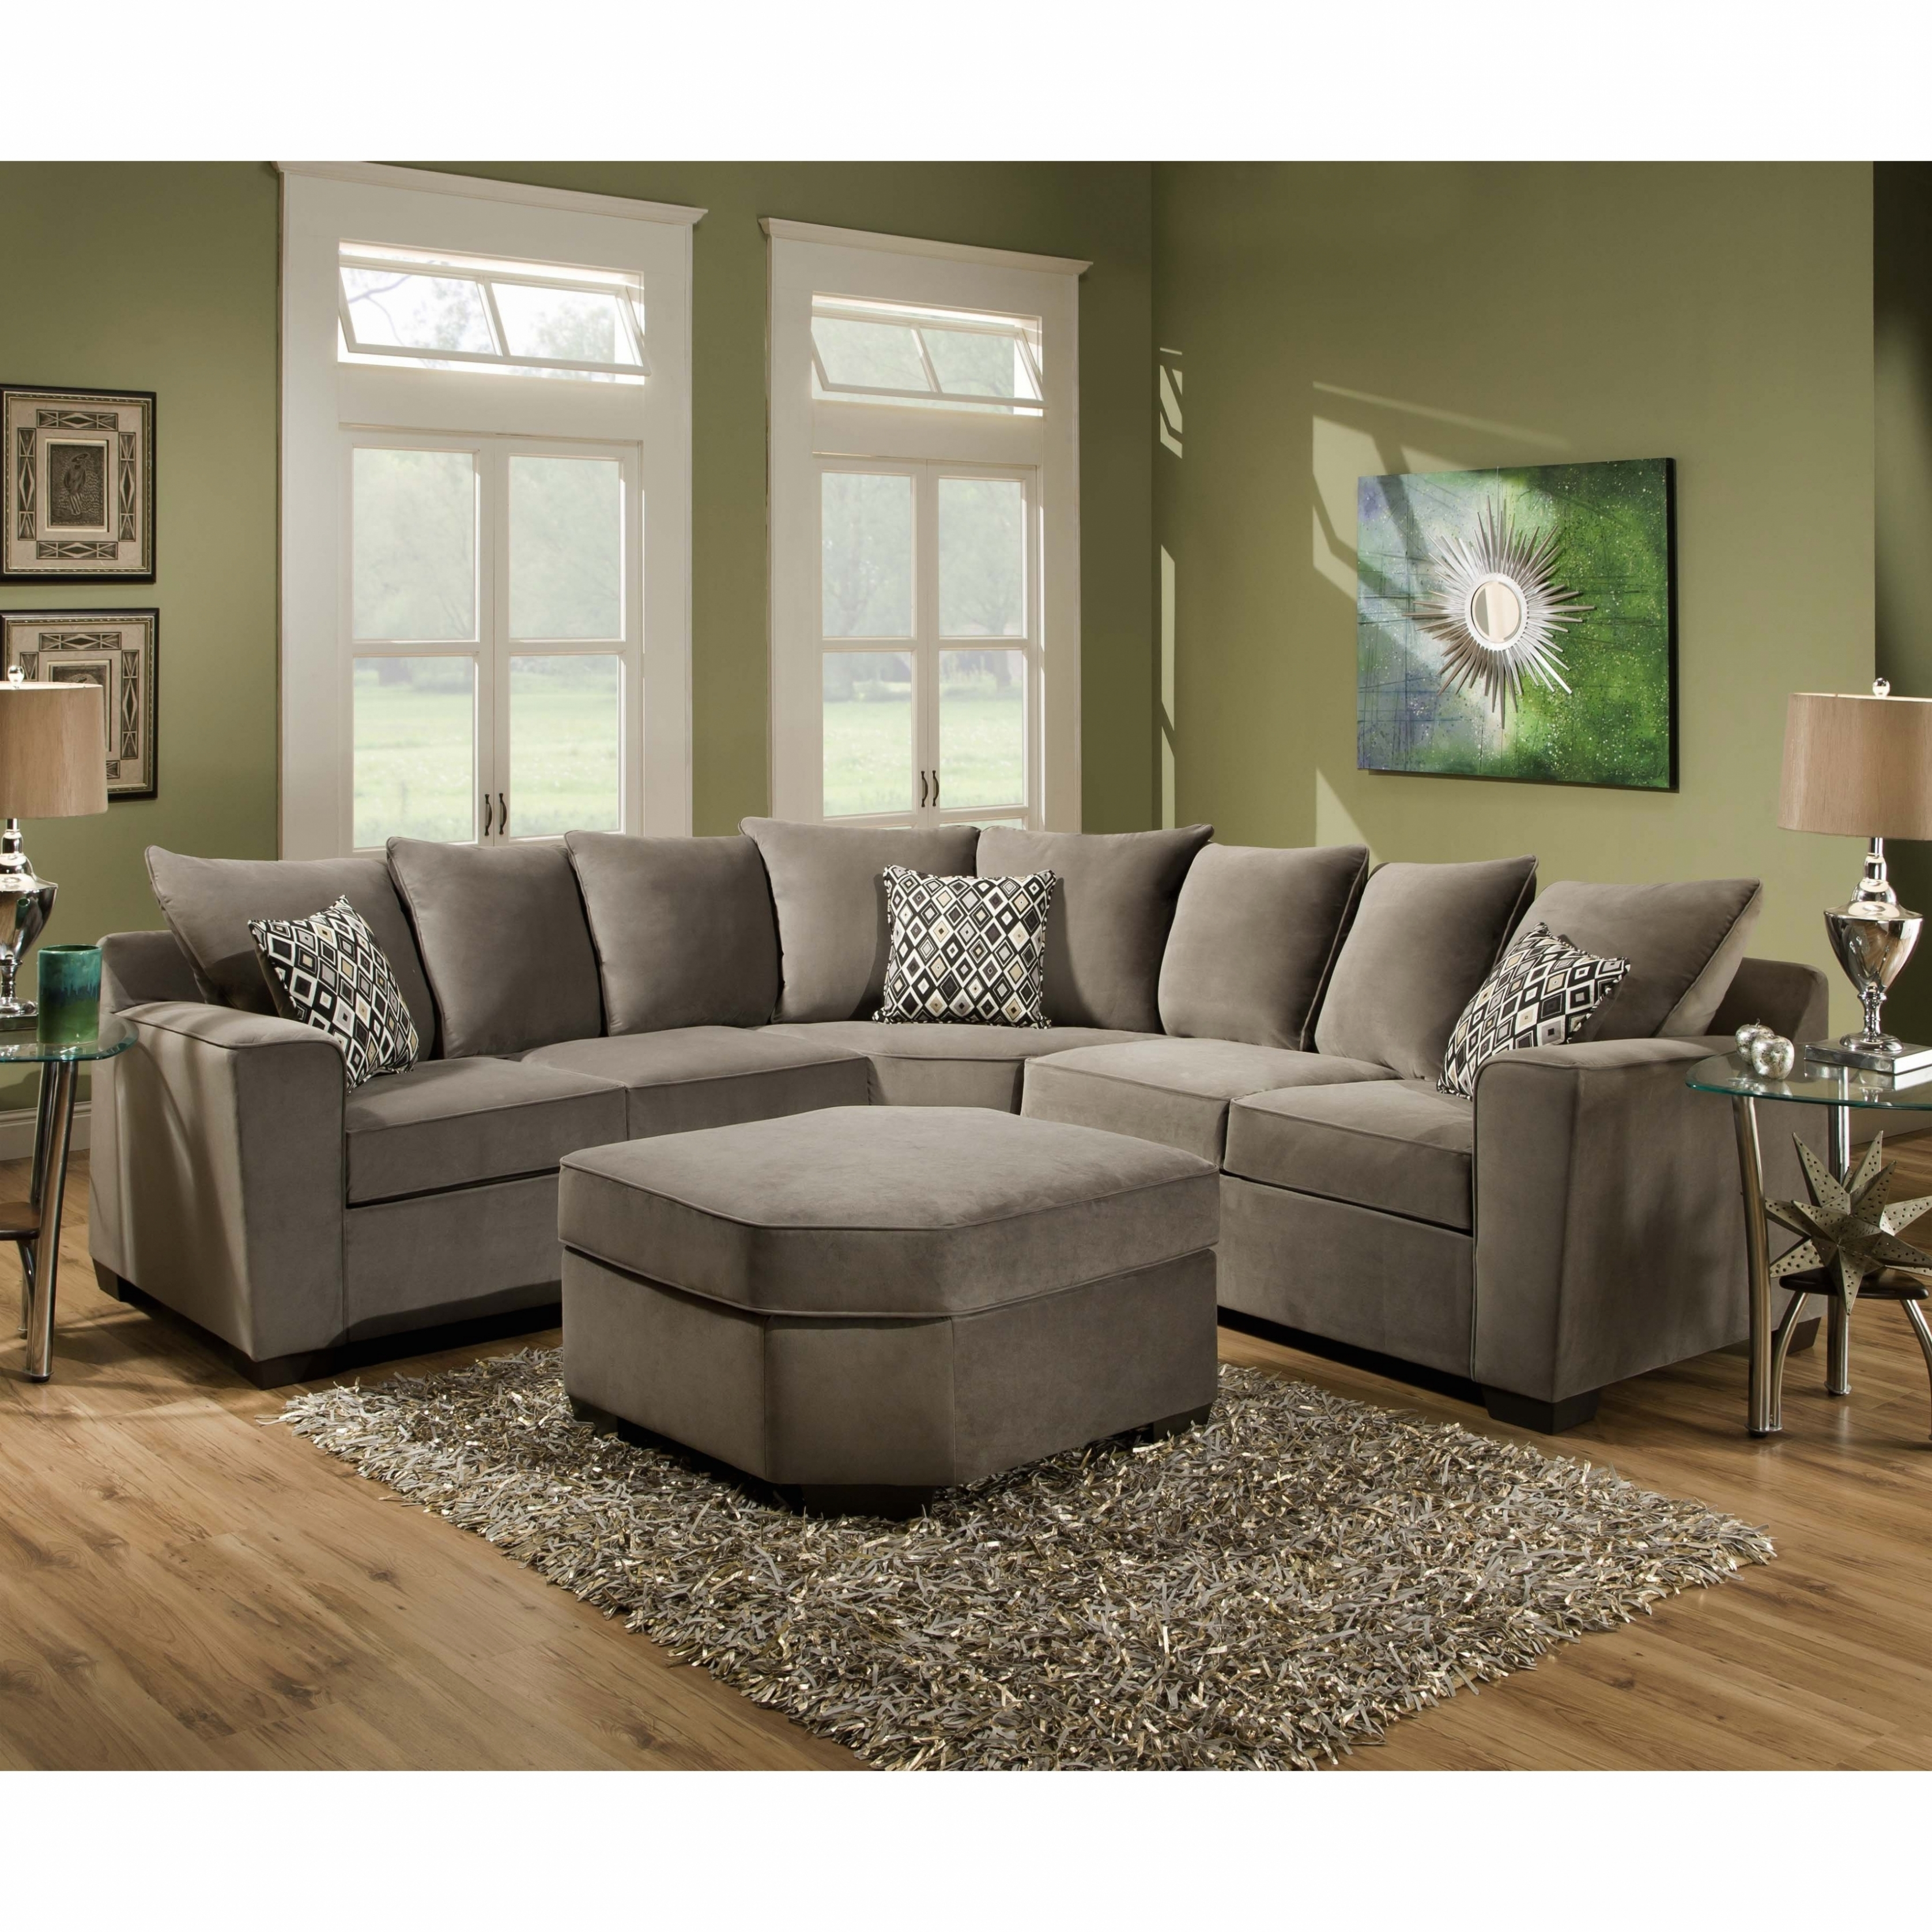 Favorite Havertys Sectional Sofas With Regard To Sofa: Havertys Sectional Sofas Nrhcares Within Lovely Havertys (View 3 of 15)